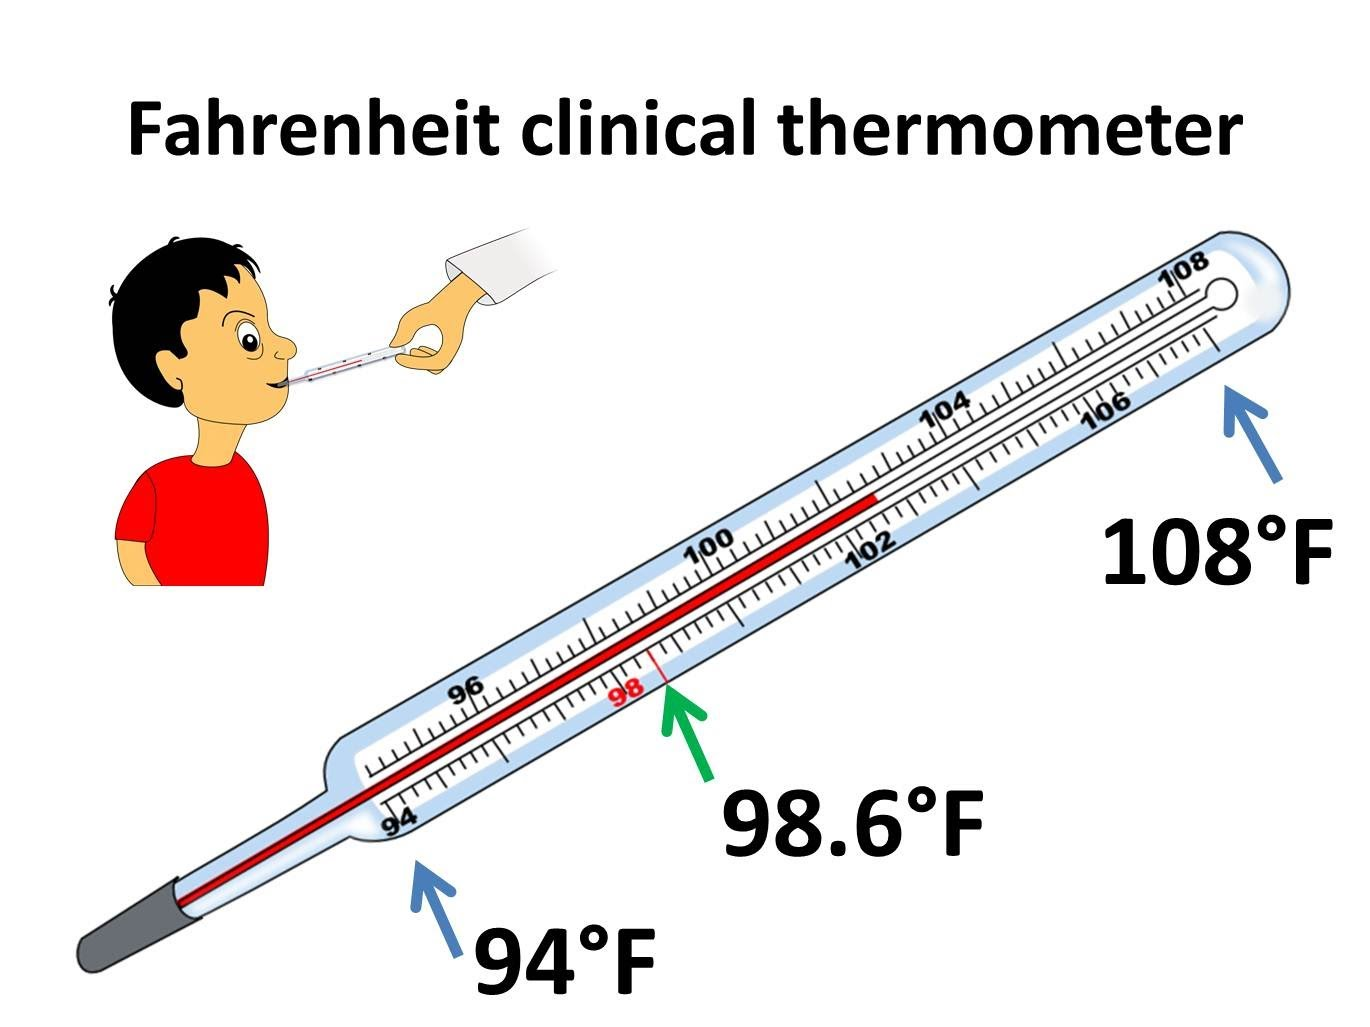 Download FingerPrint Temperature Thermometer App IPhone